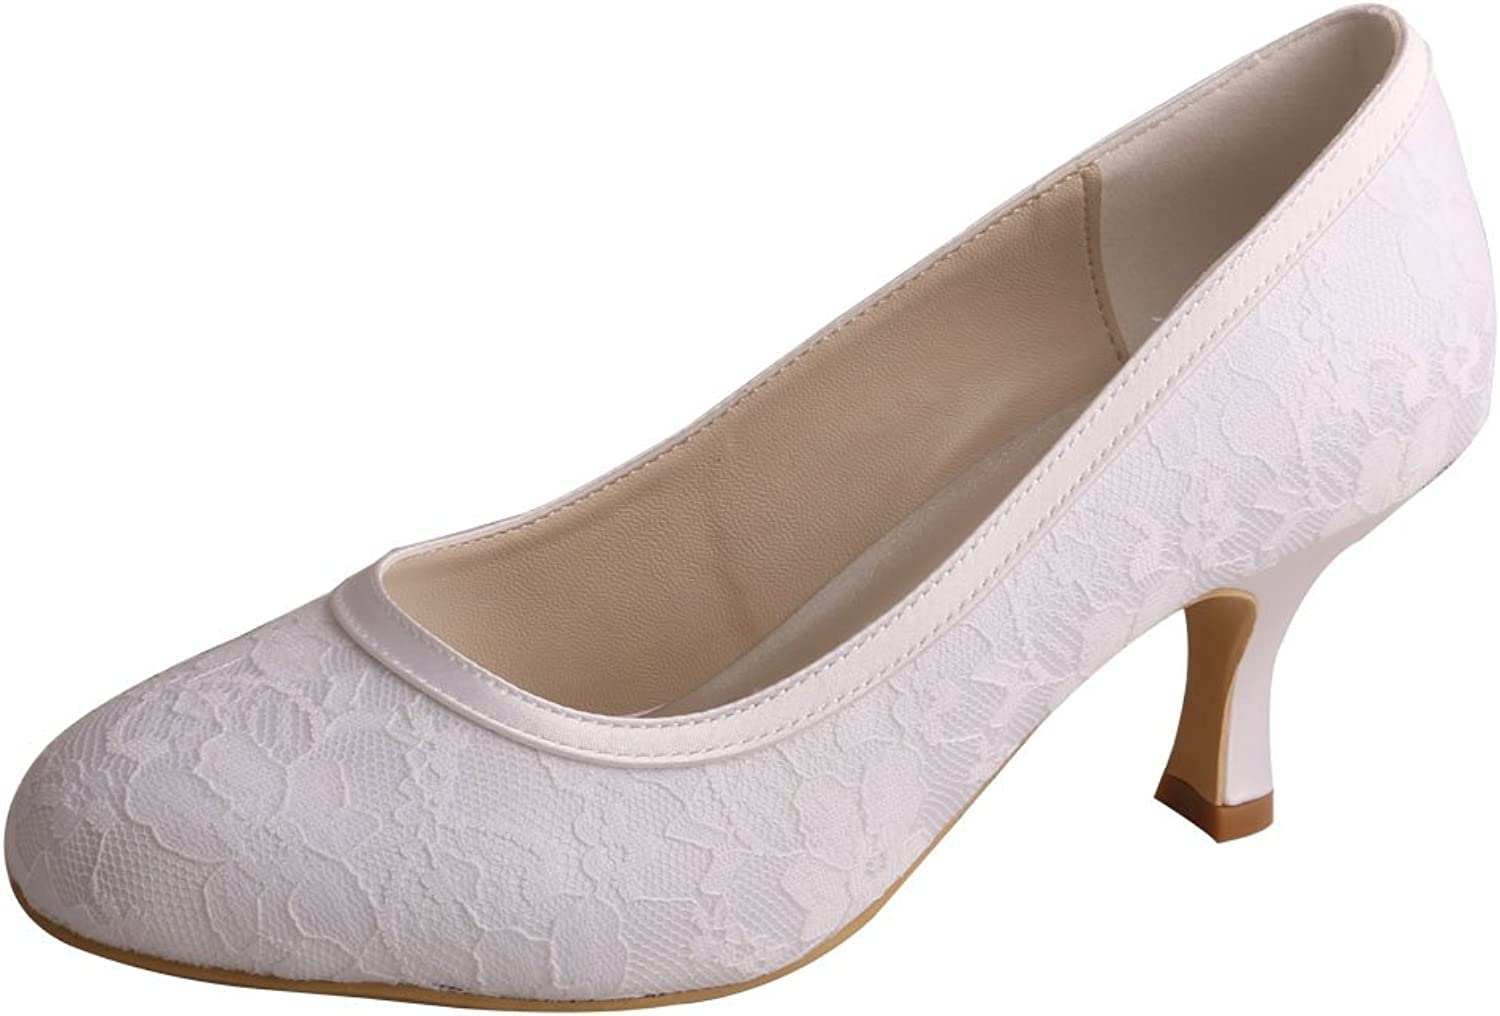 Wedopus MW858 Womens Slip-on Pumps Closed Toe Mid Heel Plain Lace Bridal Wedding shoes